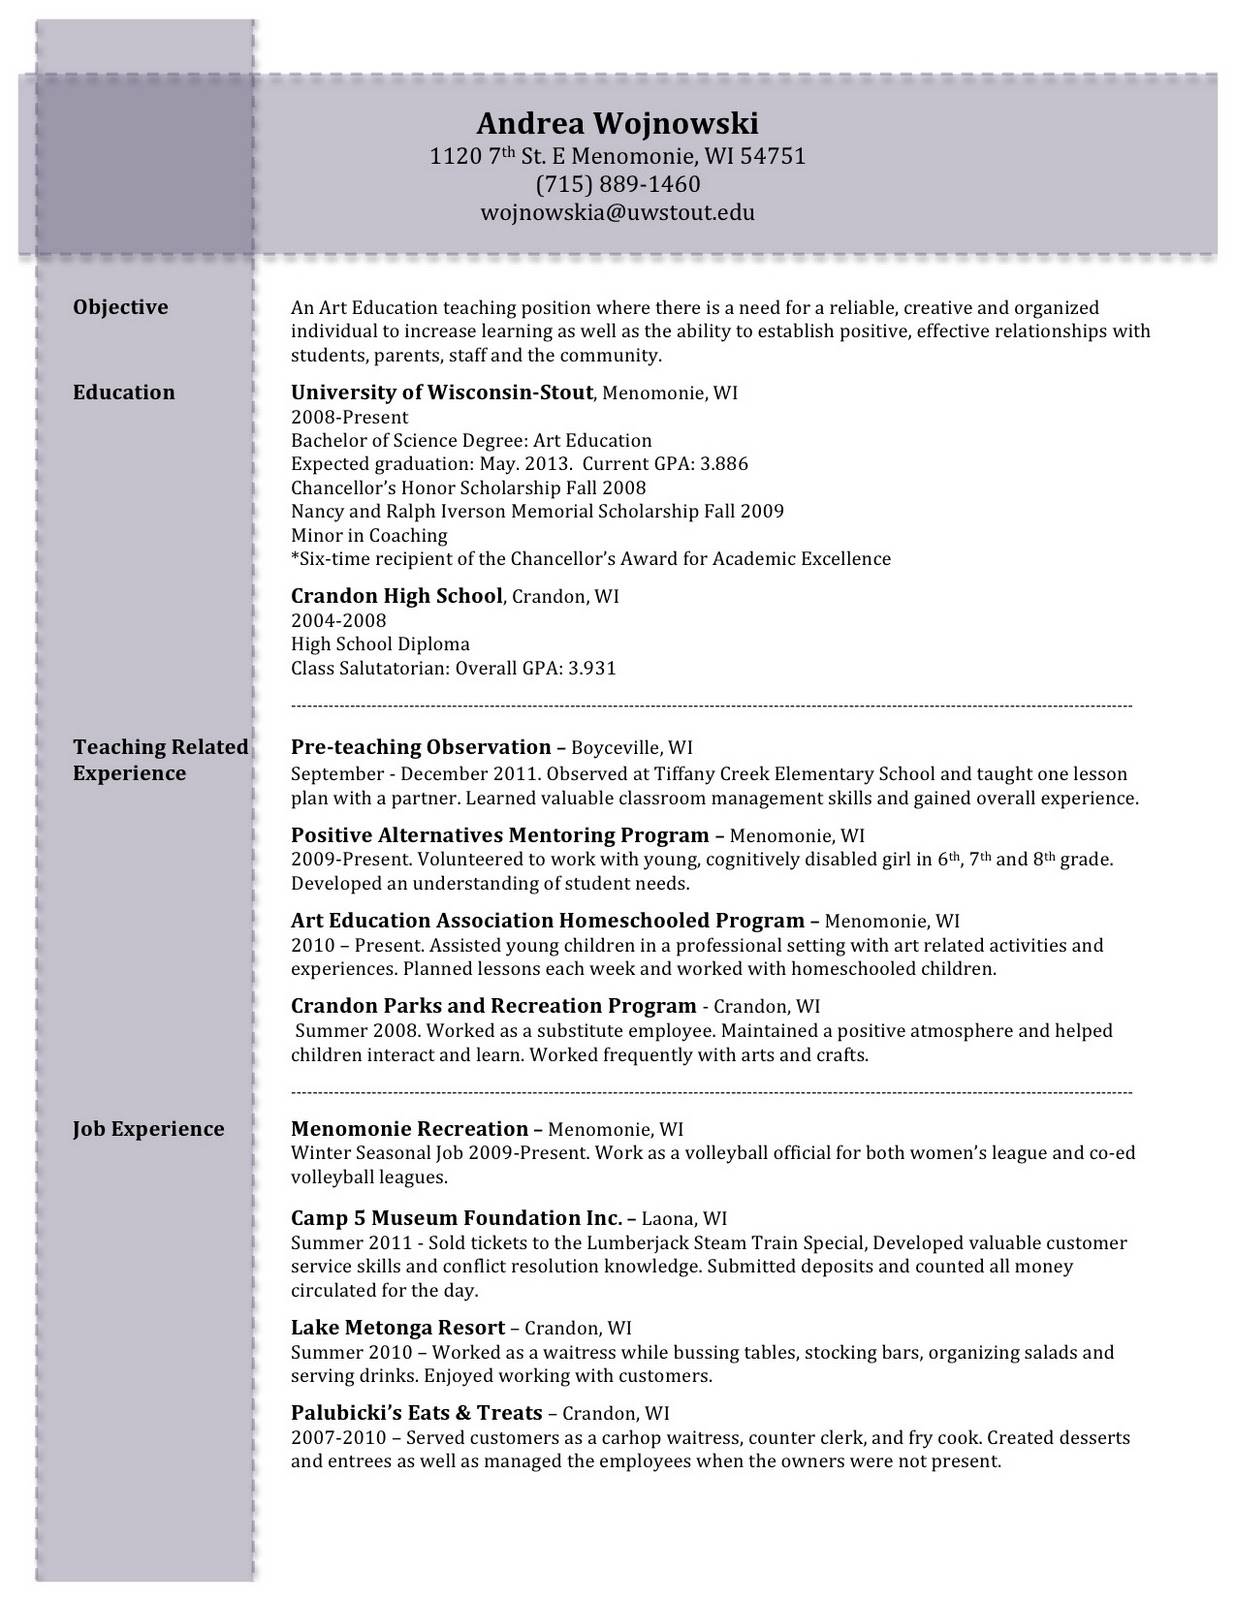 Sample Tutor Resume Breakupus Fascinating Before Free Resume Templates Best  Examples Breakupus Fascinating Before Free Resume